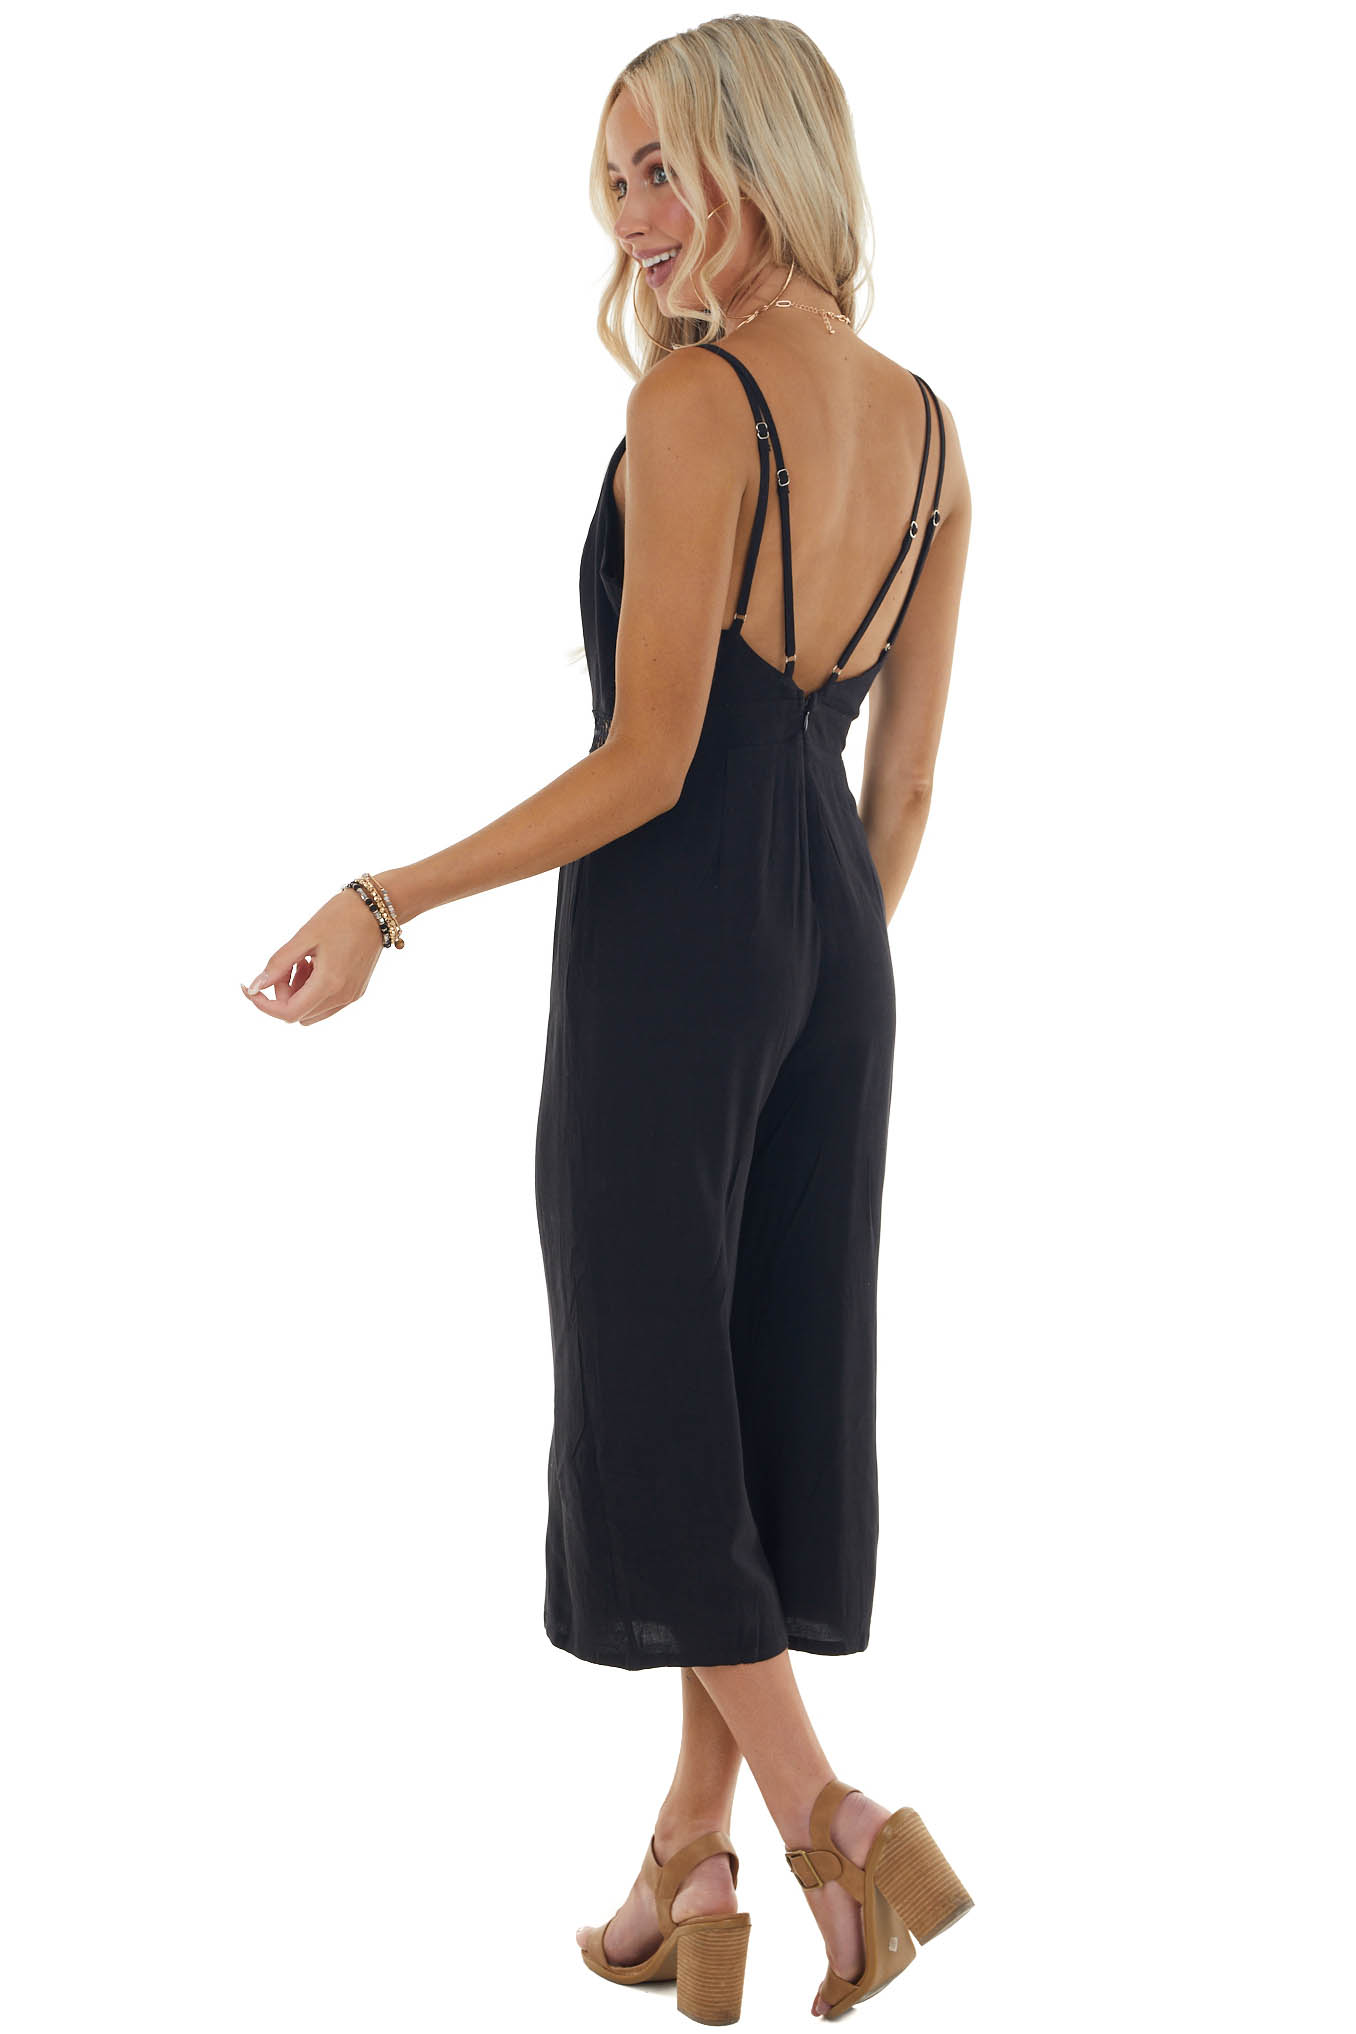 Black Sleeveless Jumpsuit with Lace Details on Waist